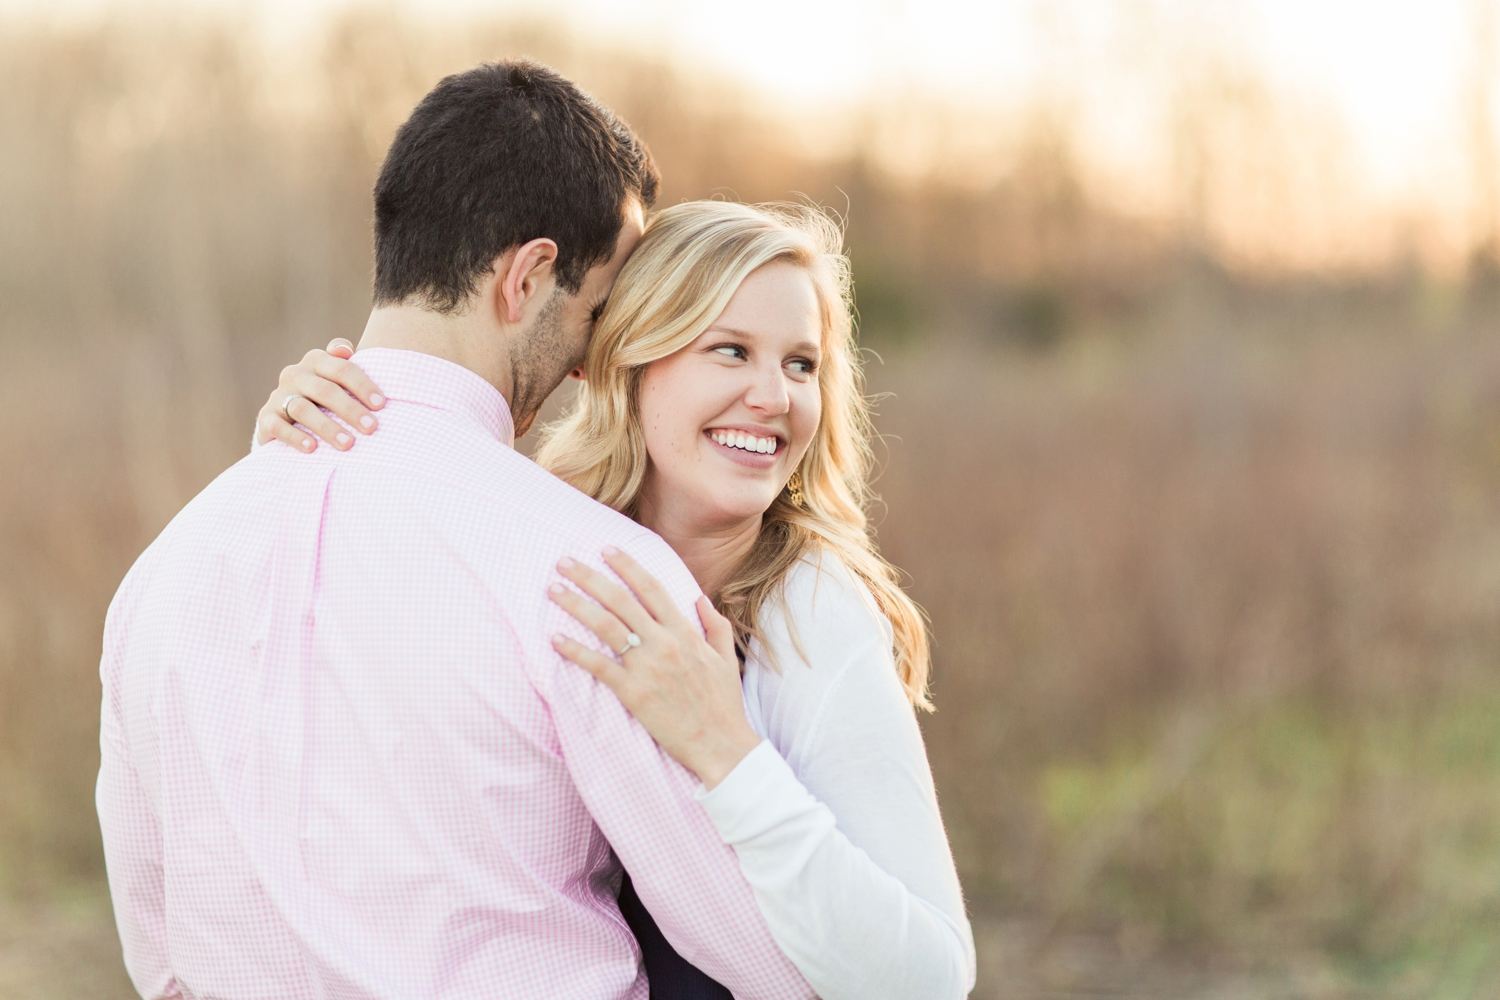 indianapolis_wedding_photographer_golden_hour_engagement_chloe_luka_photography_6145.jpg